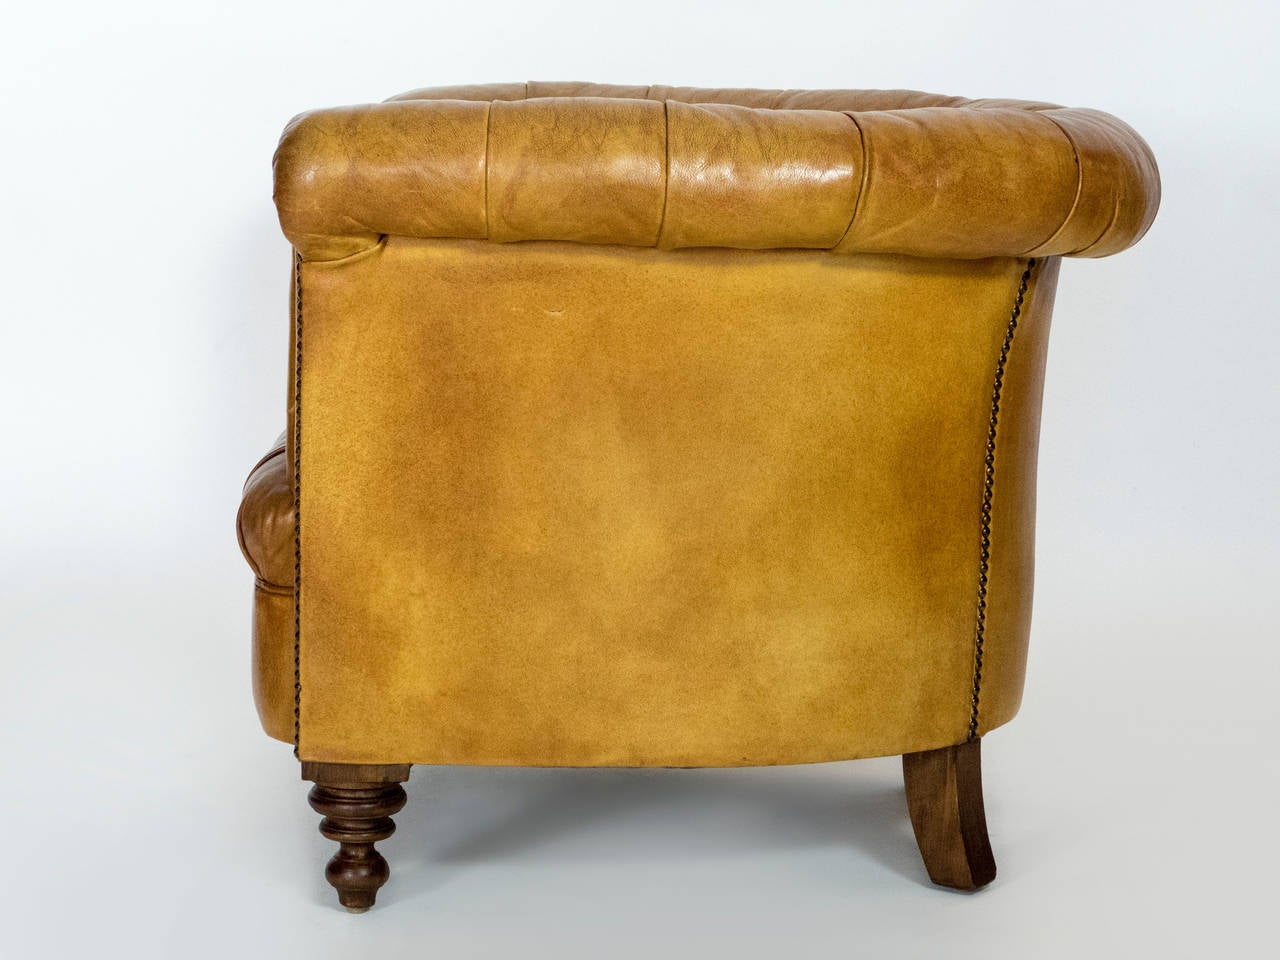 leather chesterfield armchair for sale at 1stdibs